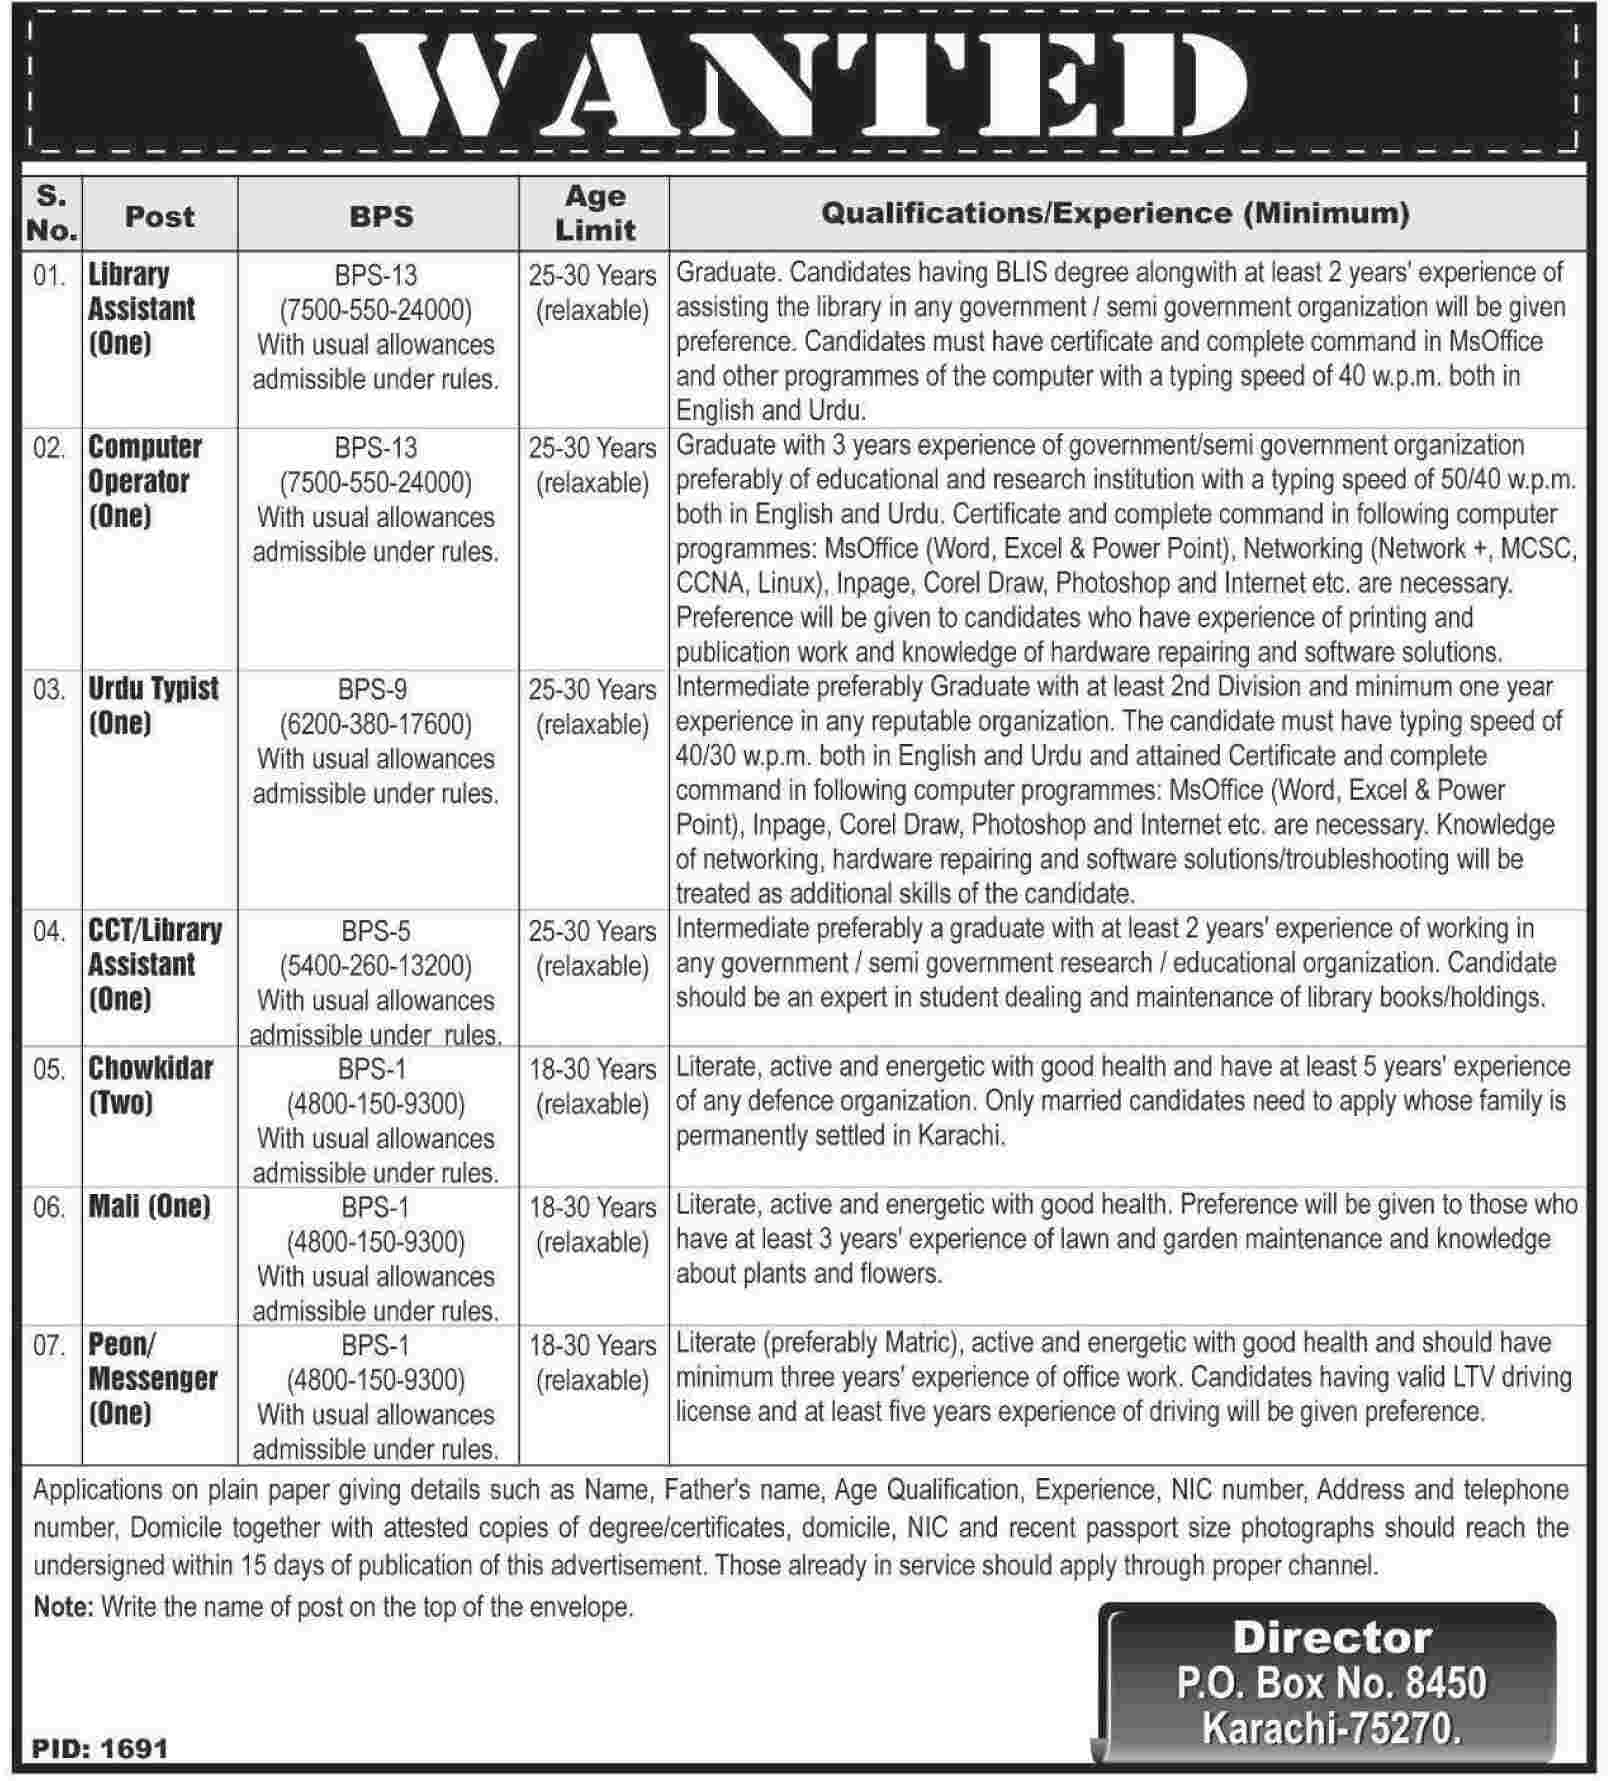 Library Assistant, Computer Operator, Mali, Peon, Chowkidar